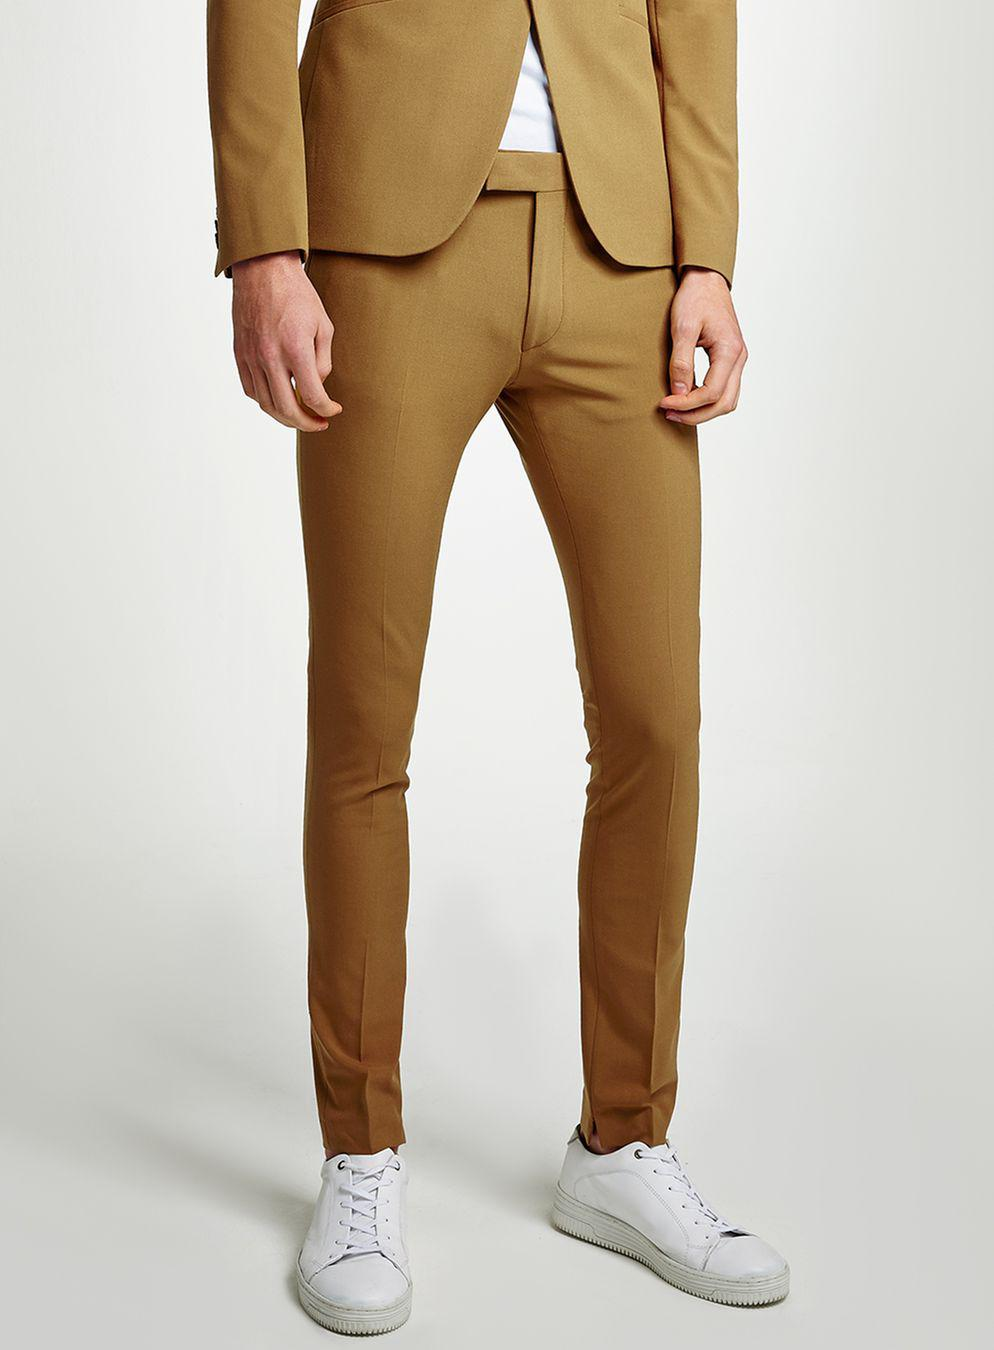 TOPMAN Synthetic Gold Spray On Suit Trousers in Red for Men